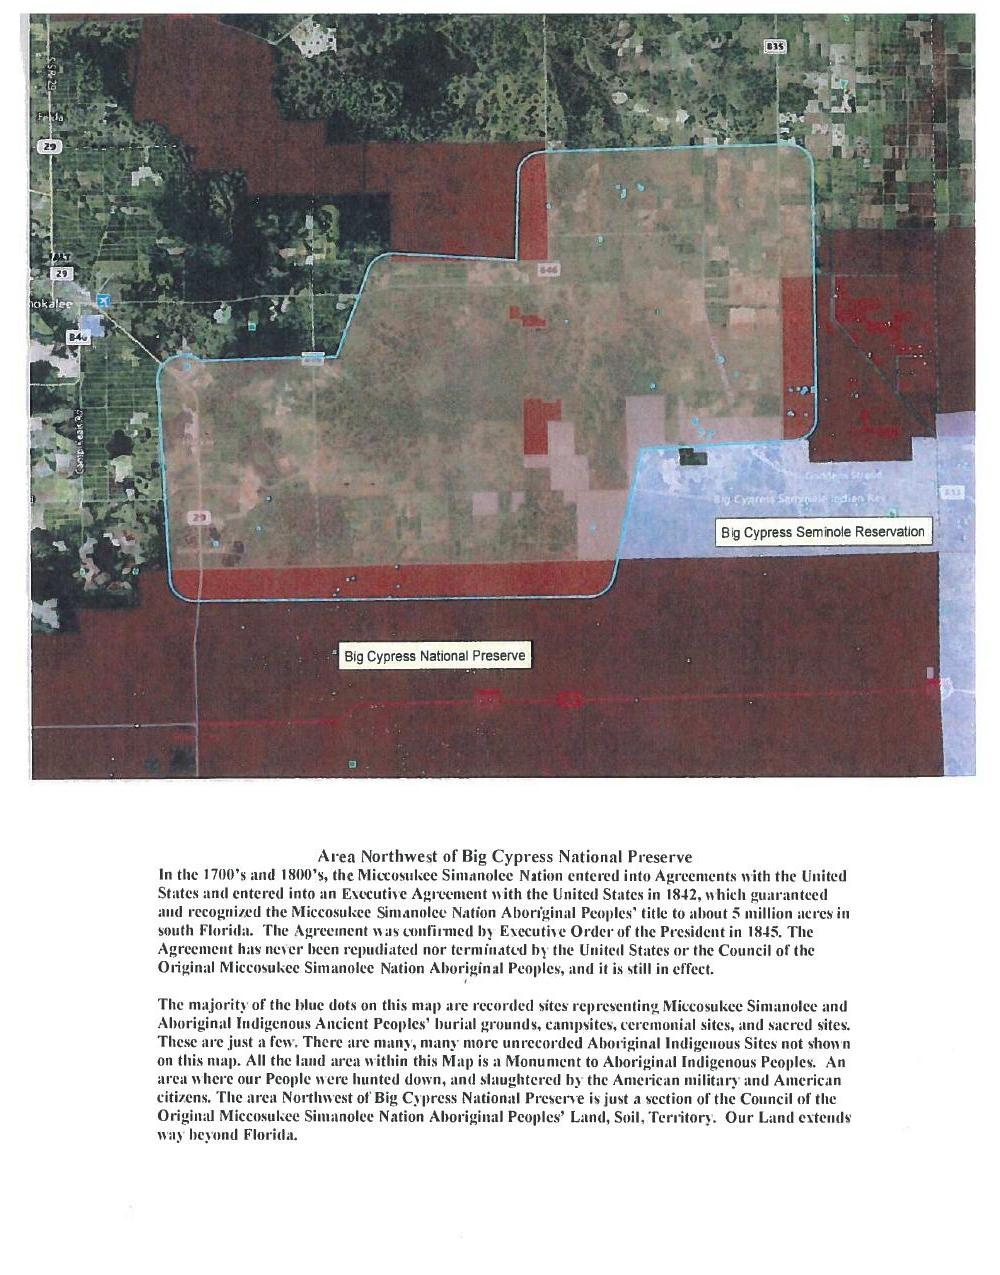 1000x1275 Area Northwest of Big Cypress National Preserve, in Council of the Original Miccosukee Simanolee Nation, by John S. Quarterman, for SpectraBusters.org, 21 November 2013